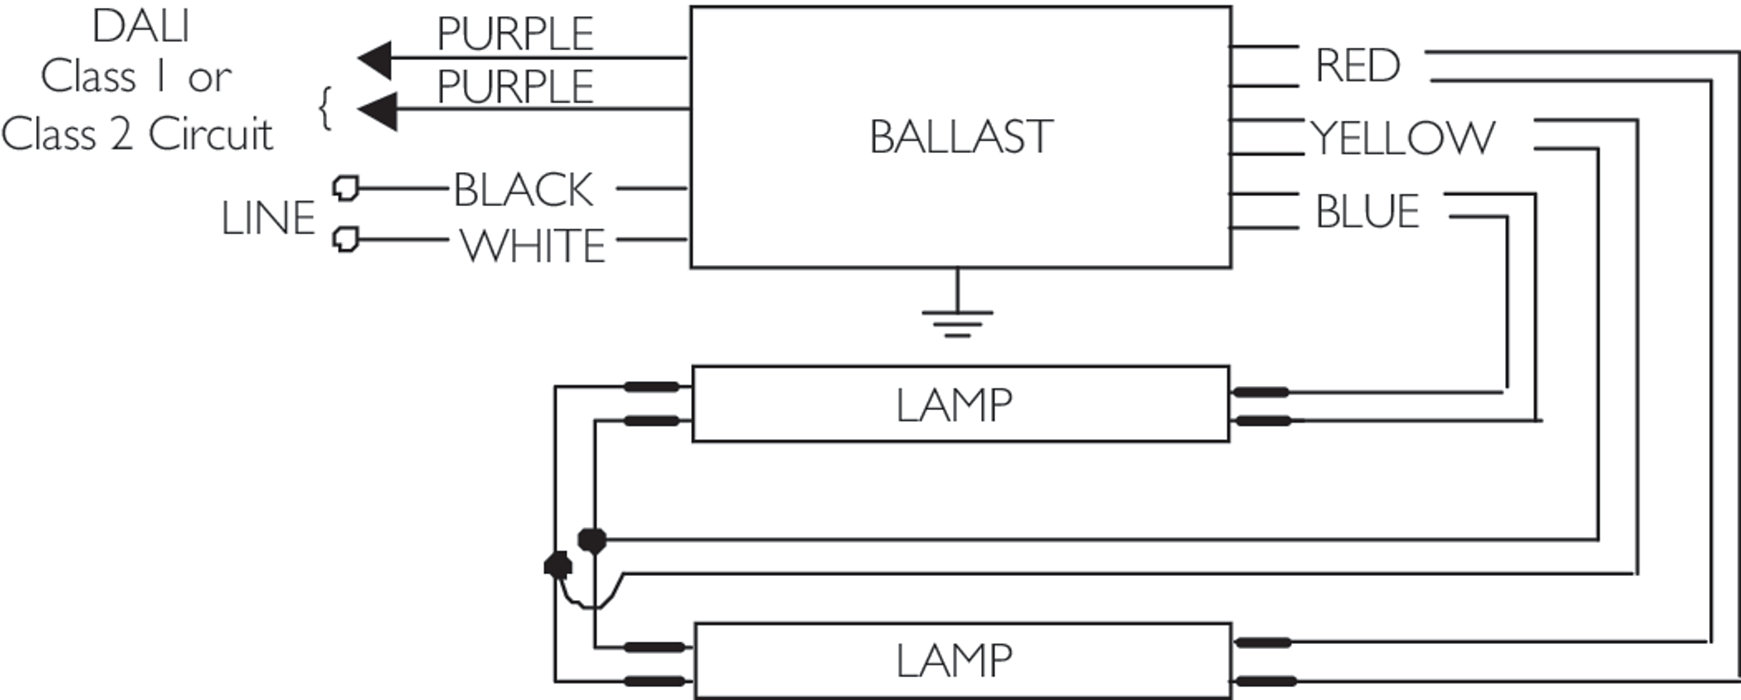 Rovr Ele Dimming Ballast 2 F54t5ho 120 277v Philips Lighting Wiring Diagram Intelligent Control